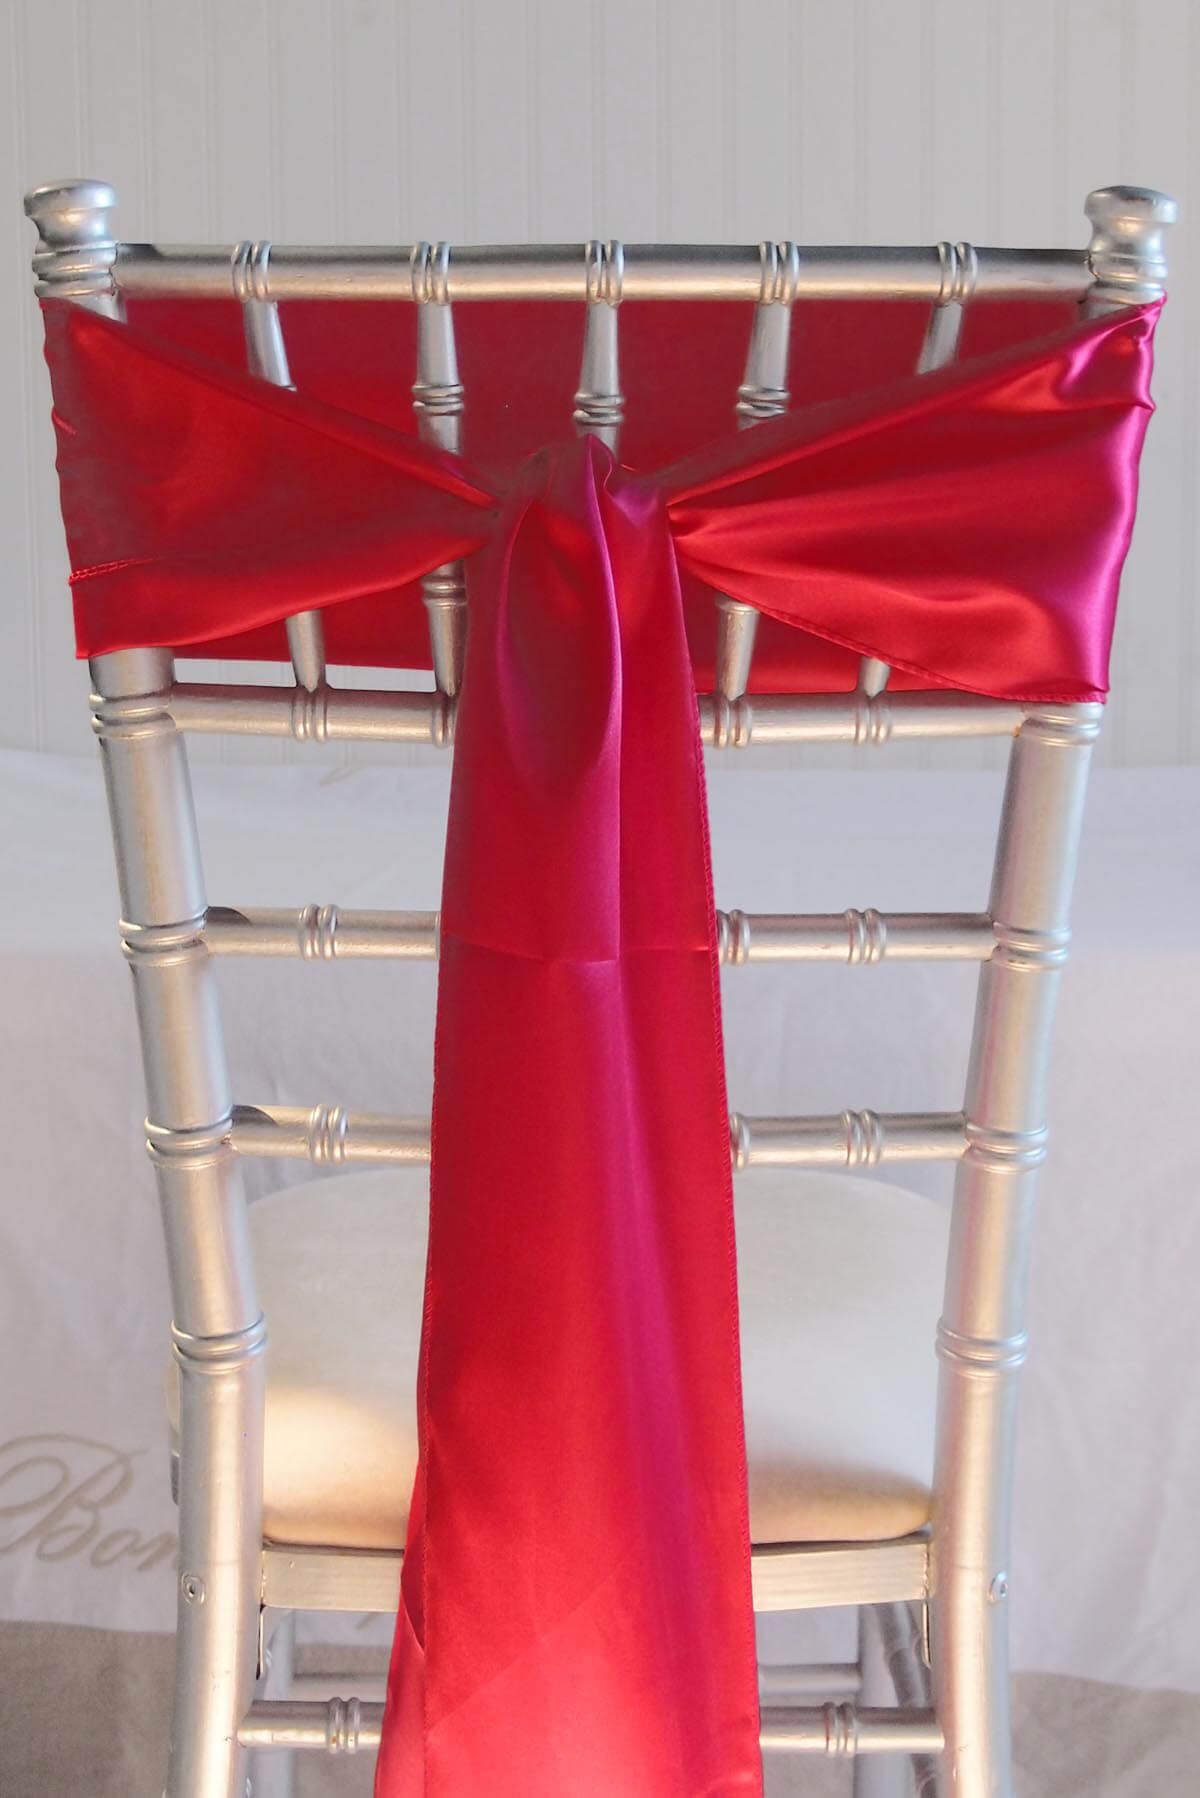 10 Hot Pink Satin Chair Sashes 6 x 106